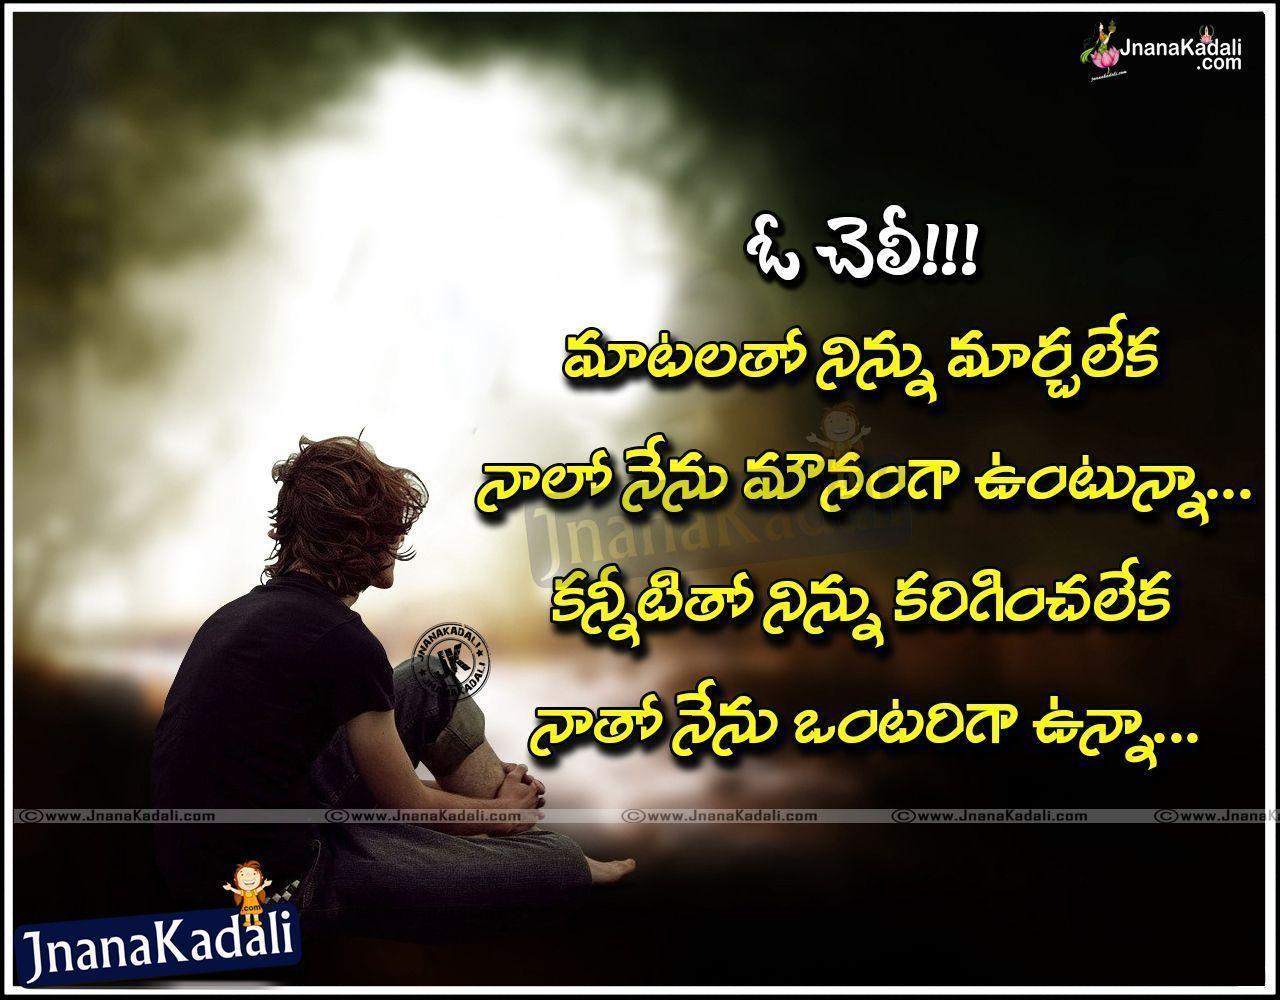 Love Failure Wallpaper For Iphone : Love Failure Images With Quotes In Telugu Wallpaper sportstle